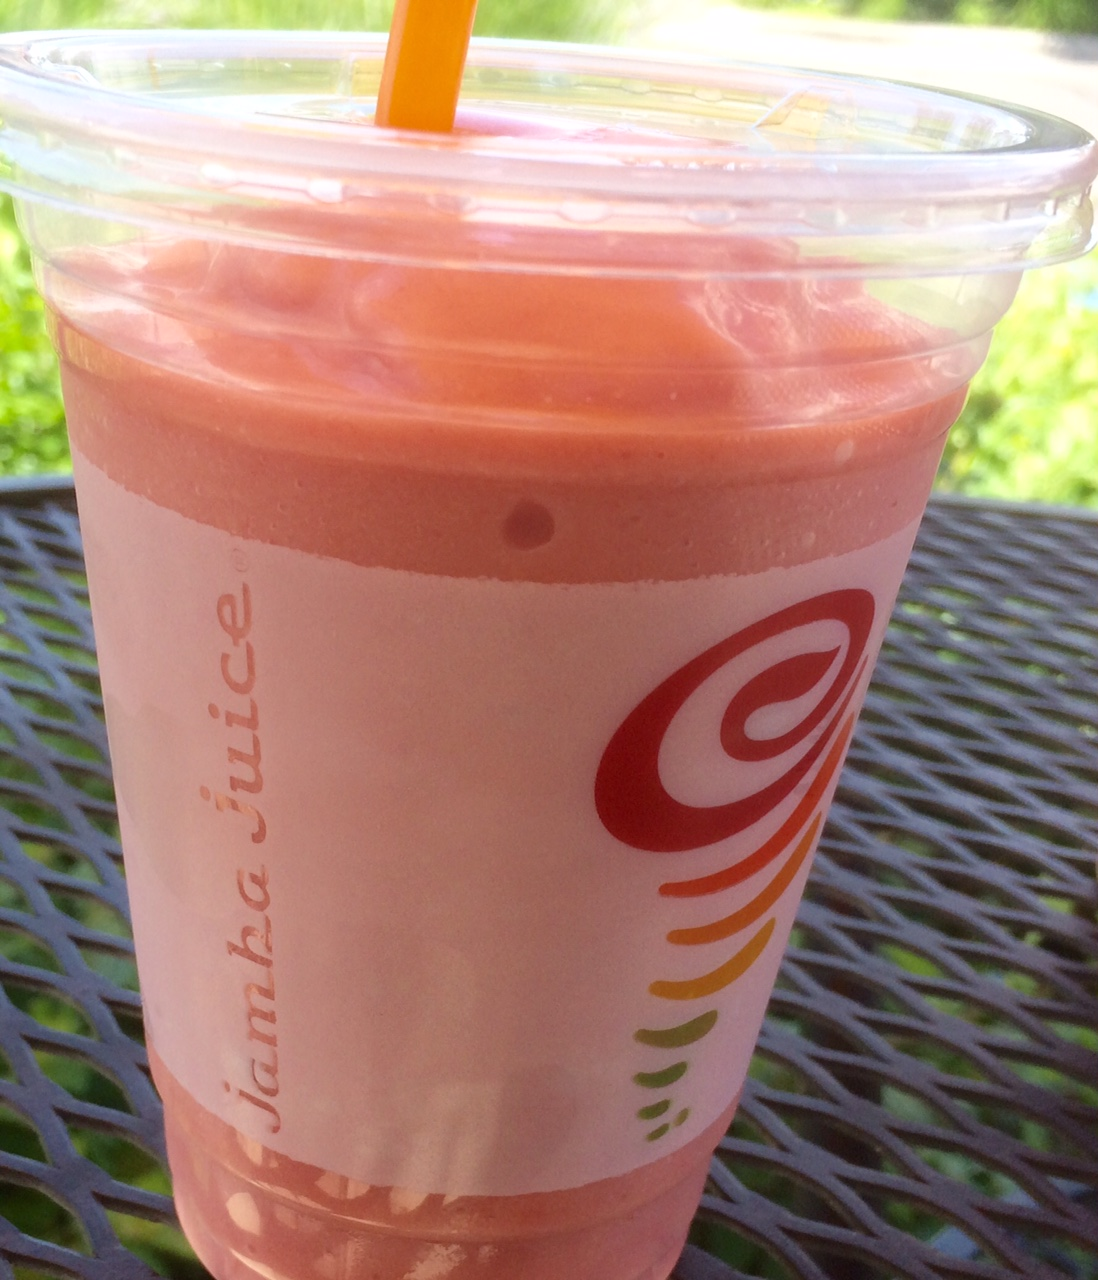 watermelon breeze is a smoothie at jamba juice